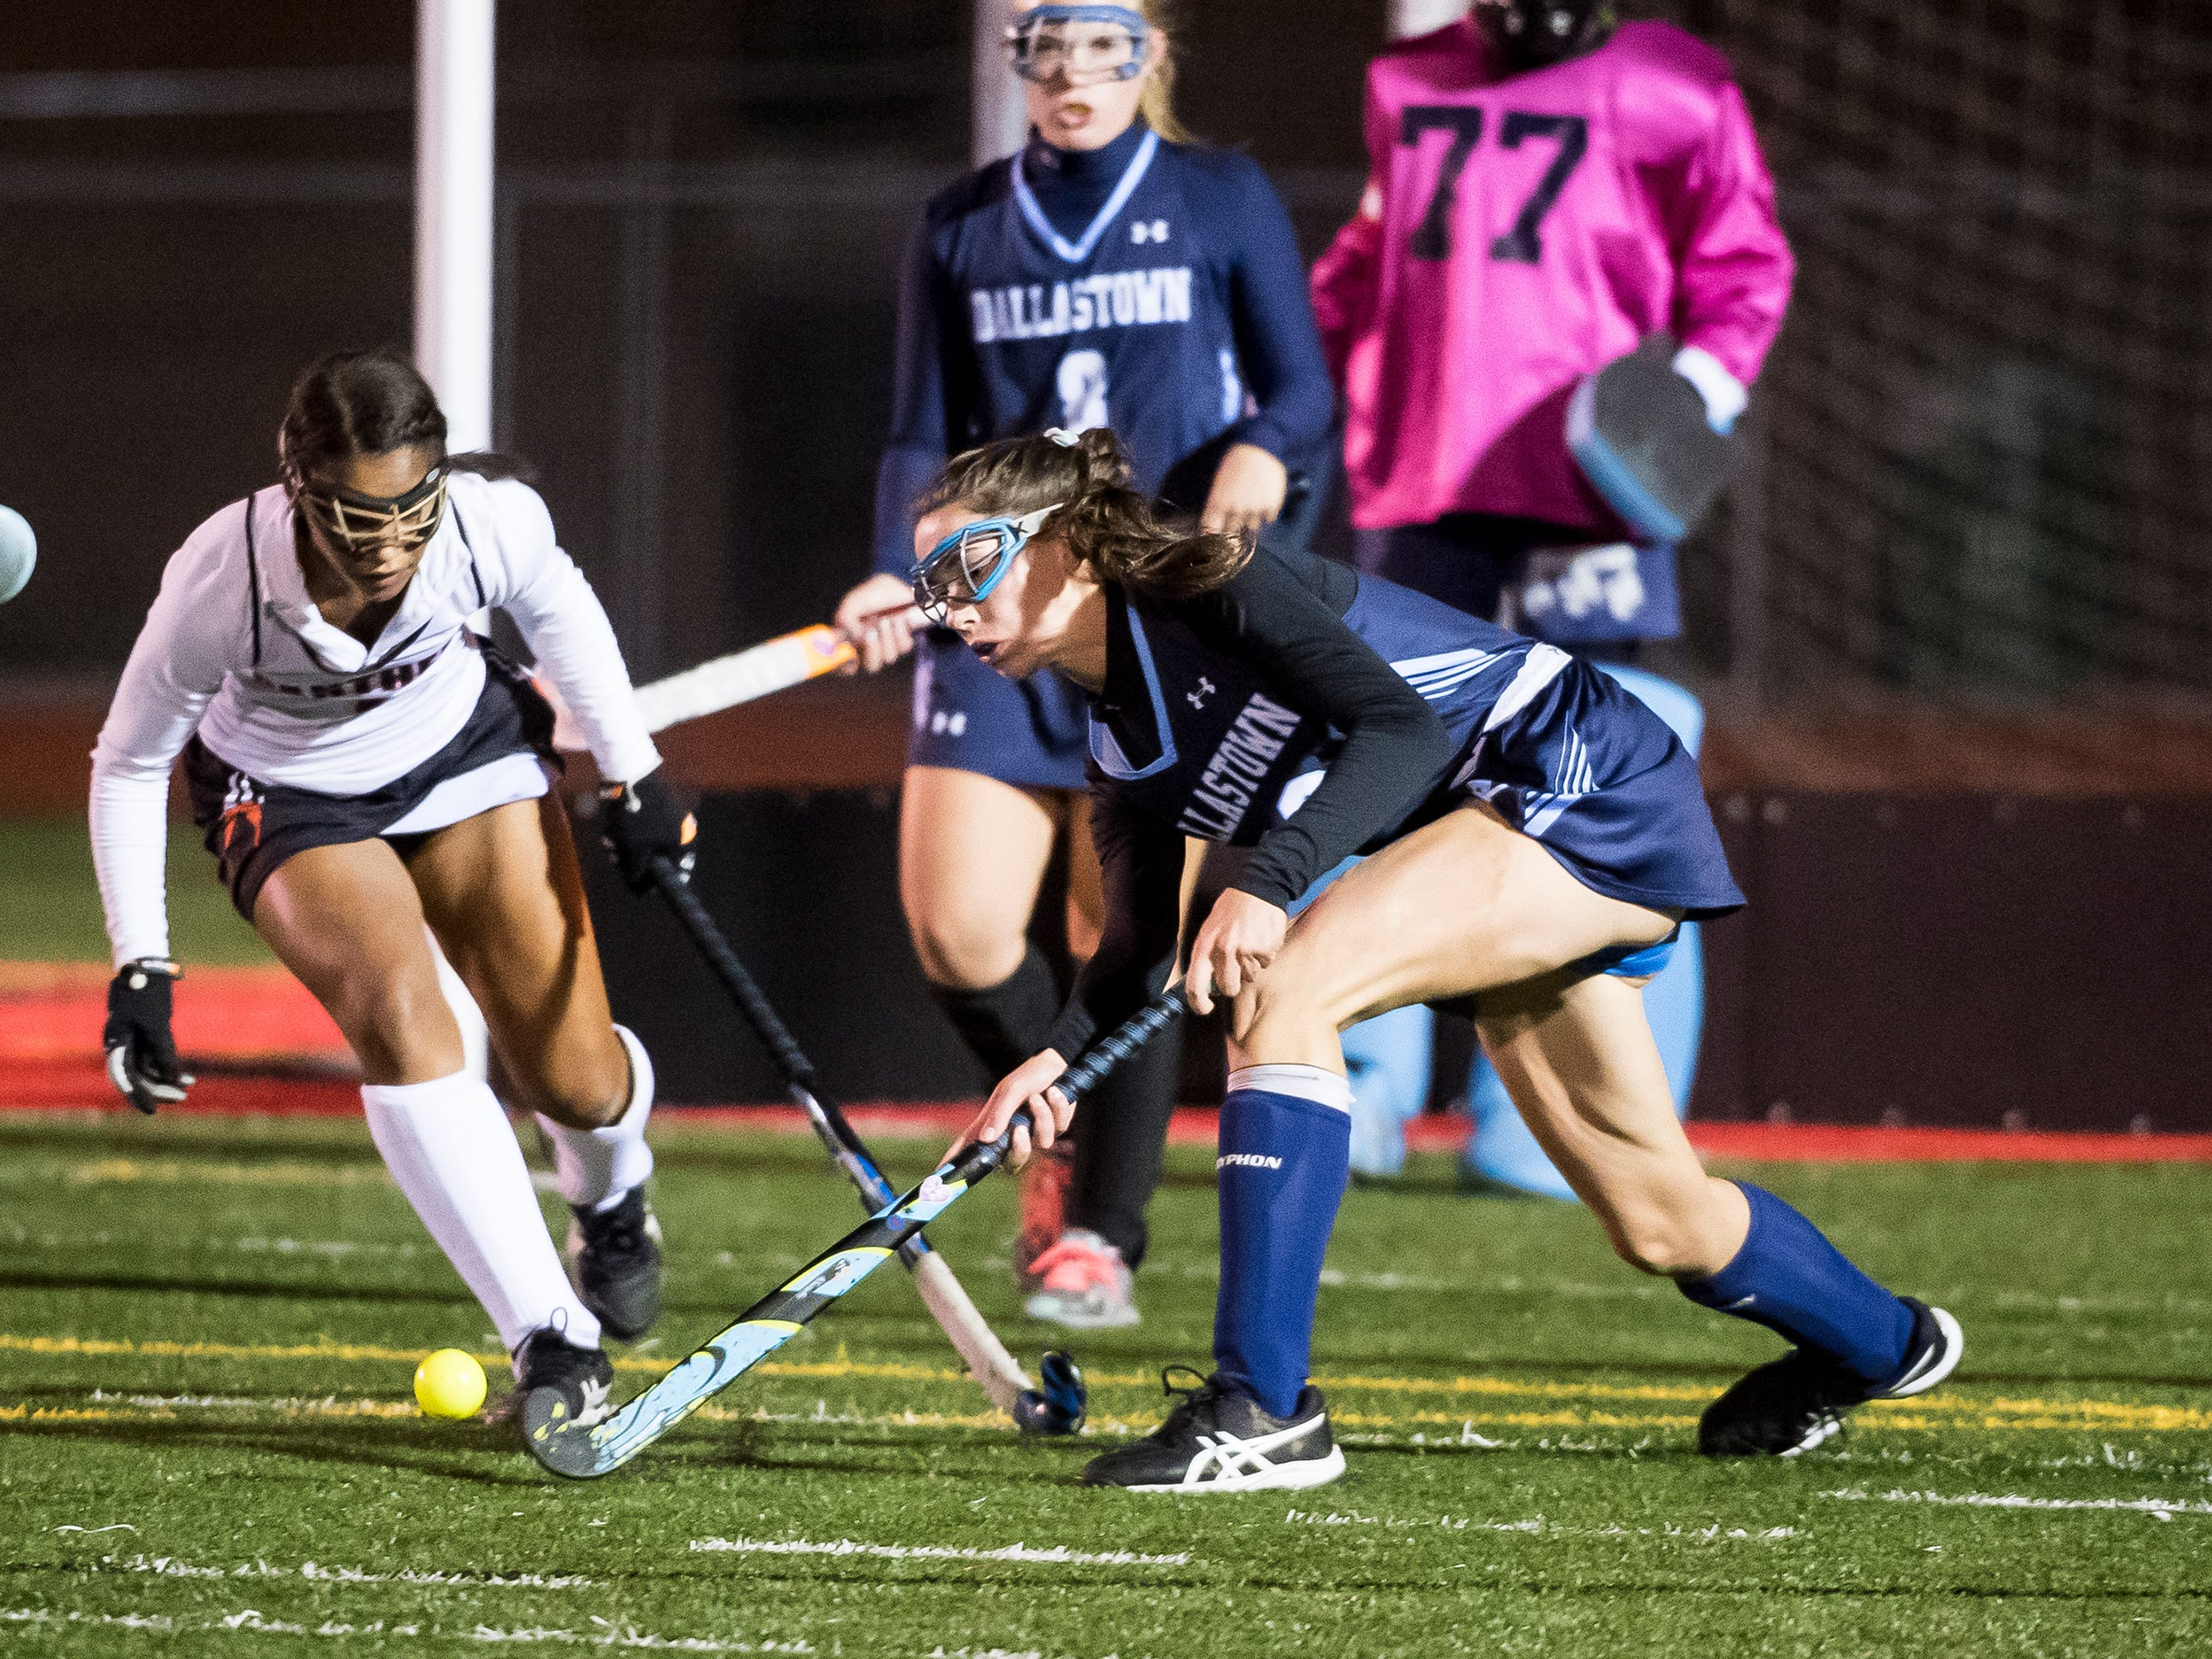 Action during a YAIAA tournament semifinal game between Dallastown and Central York at Bermudian Springs High School on Thursday, October 18, 2018. The Panthers won 2-0 and advance to the championship game against Bermudian Springs on Saturday.